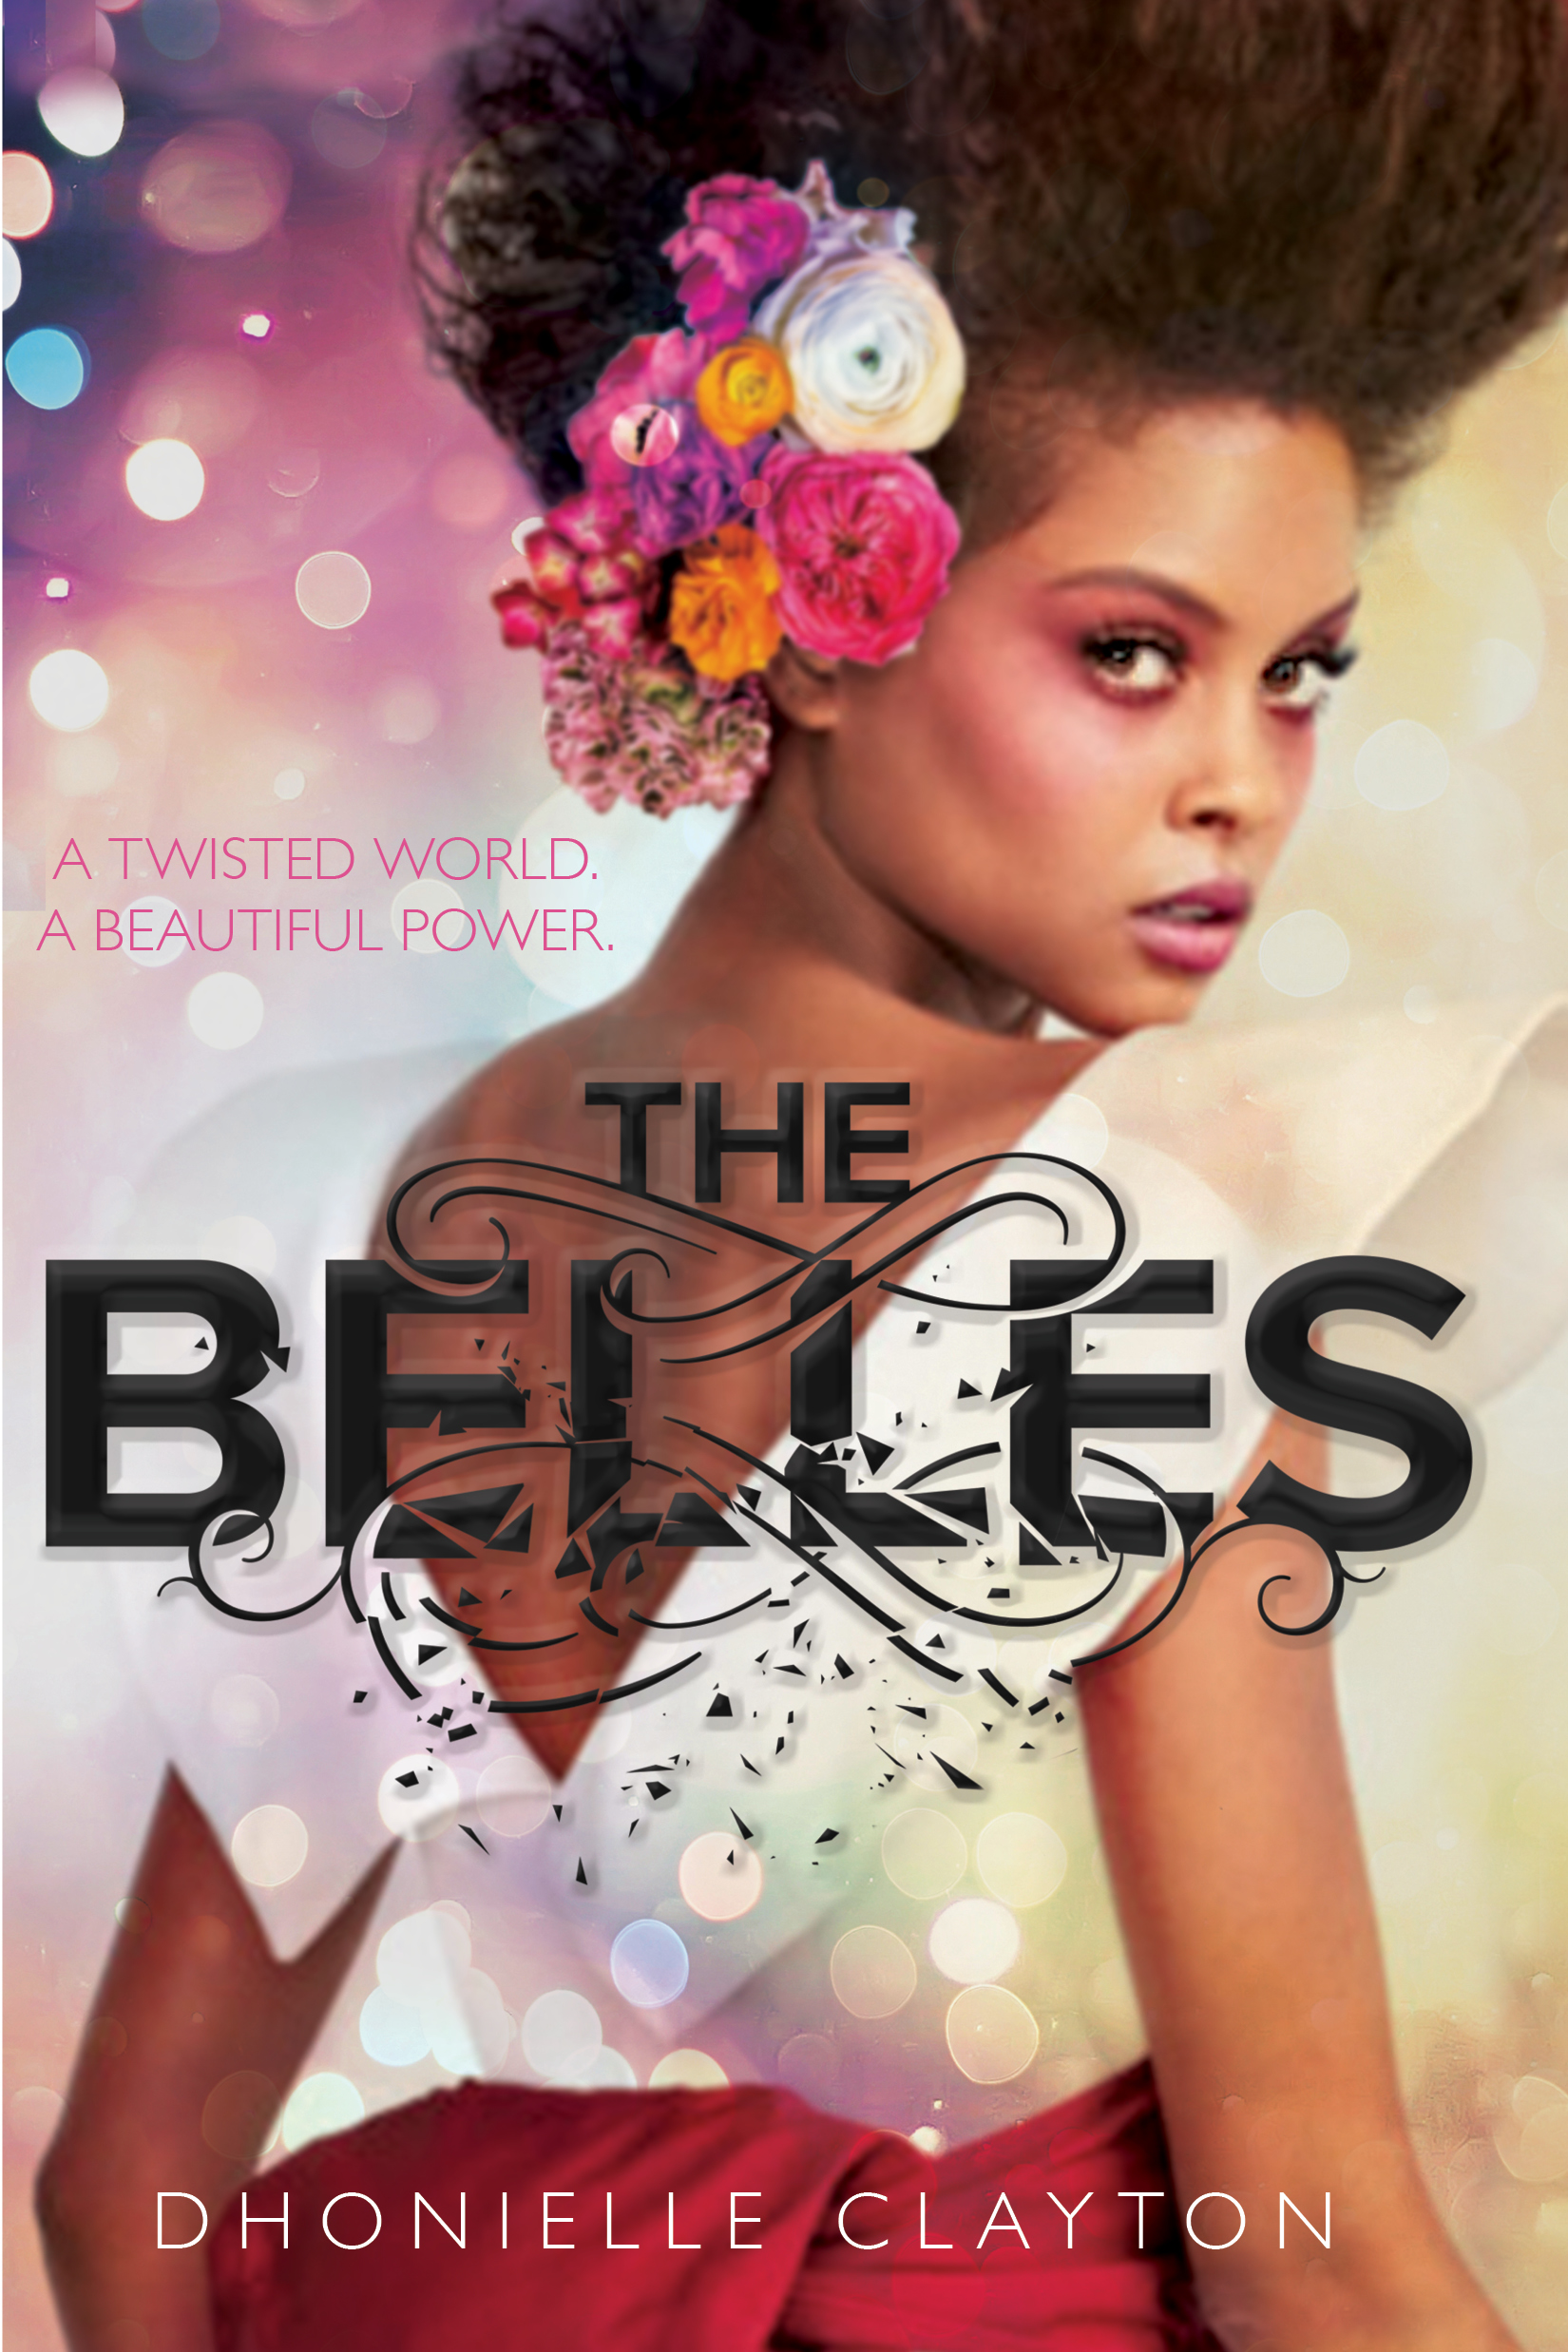 Belles, The [electronic resource]